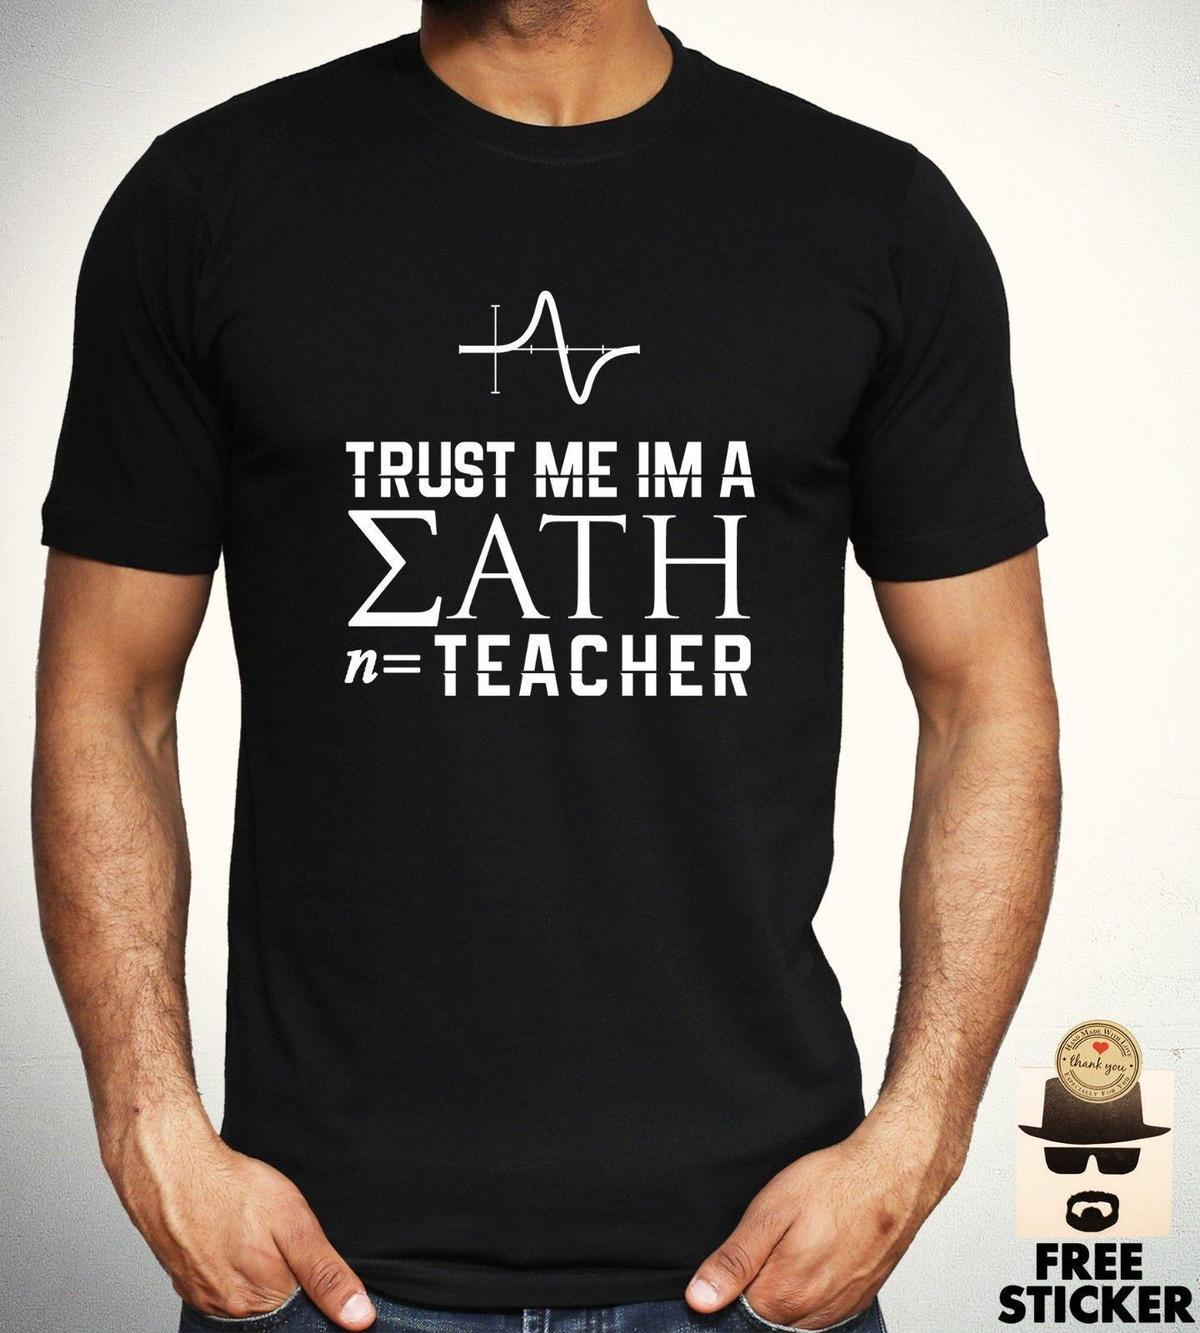 fe610455163 Trust Me I M A Math Teacher Funny Nerdy Geeky Tee Gift Top Mens Women  Unisex Design Your Own T Shirts Womens Shirt From Lefan09